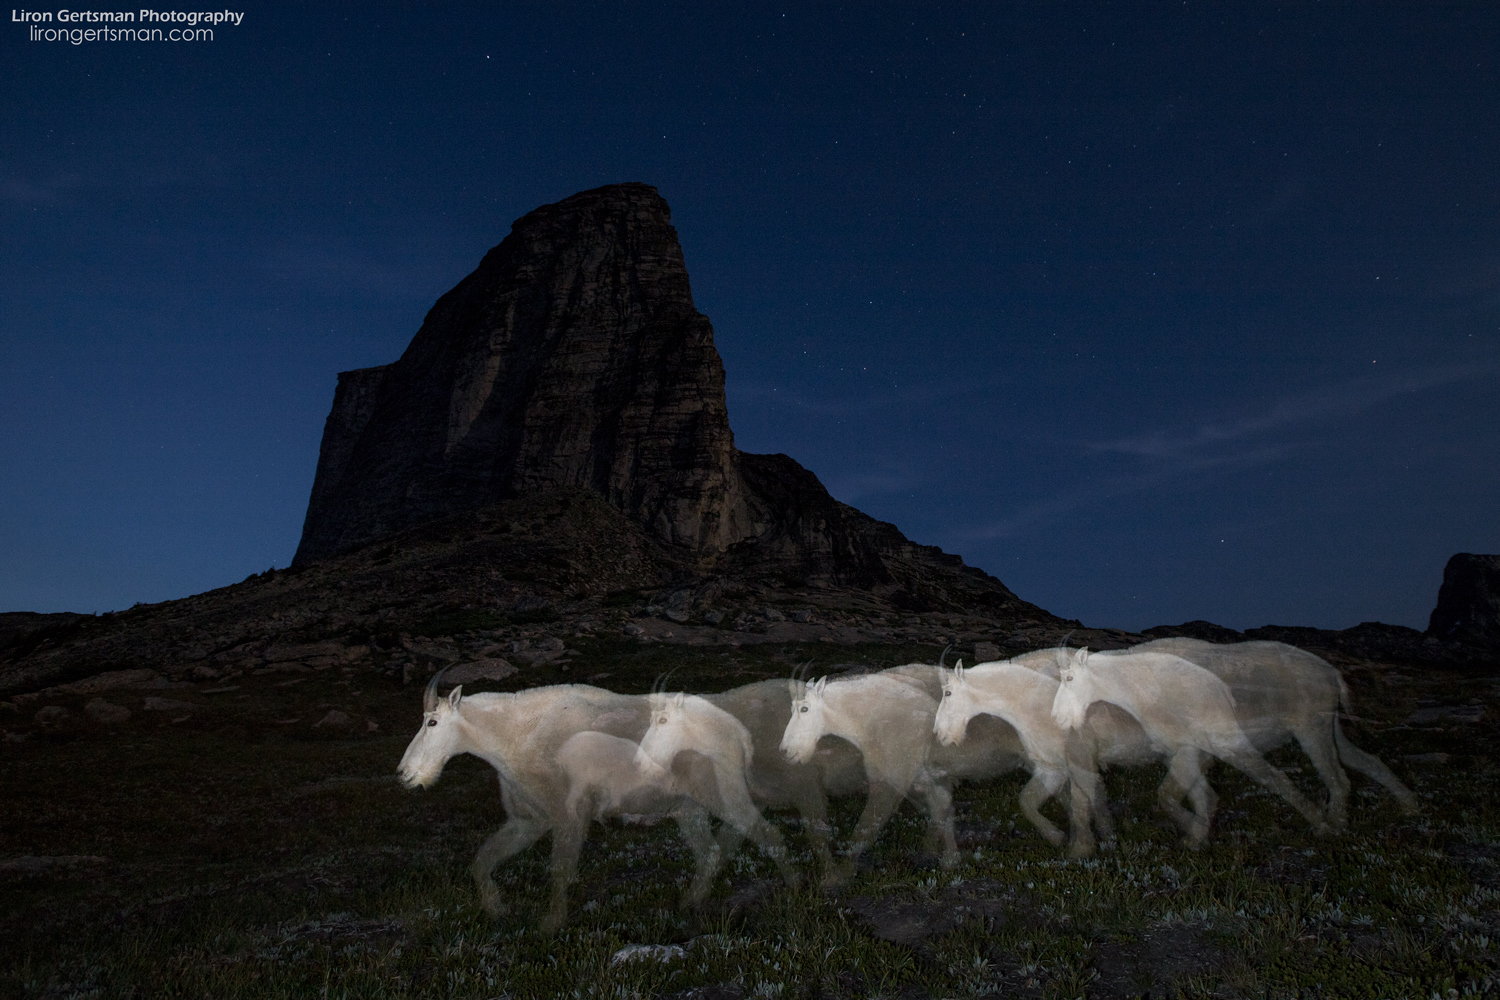 Mountain-Goat-Ghosts-with-peak-dodge-and-burn-web.jpg